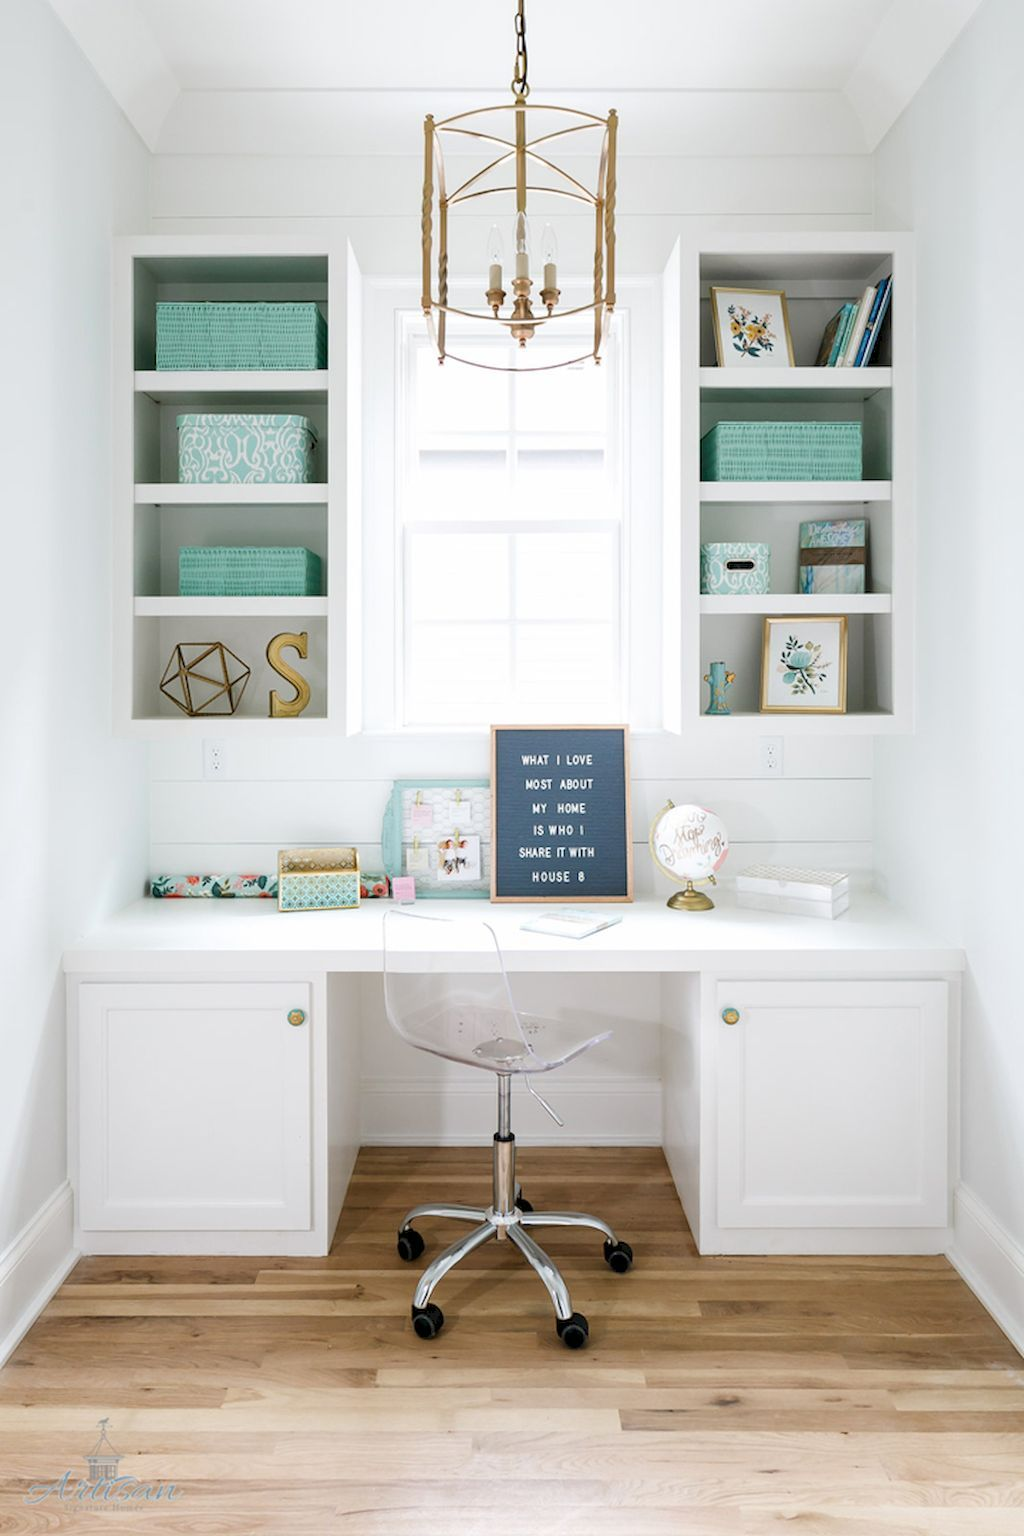 80 Small Space Home Office Design Ideas | Office designs, Small ...